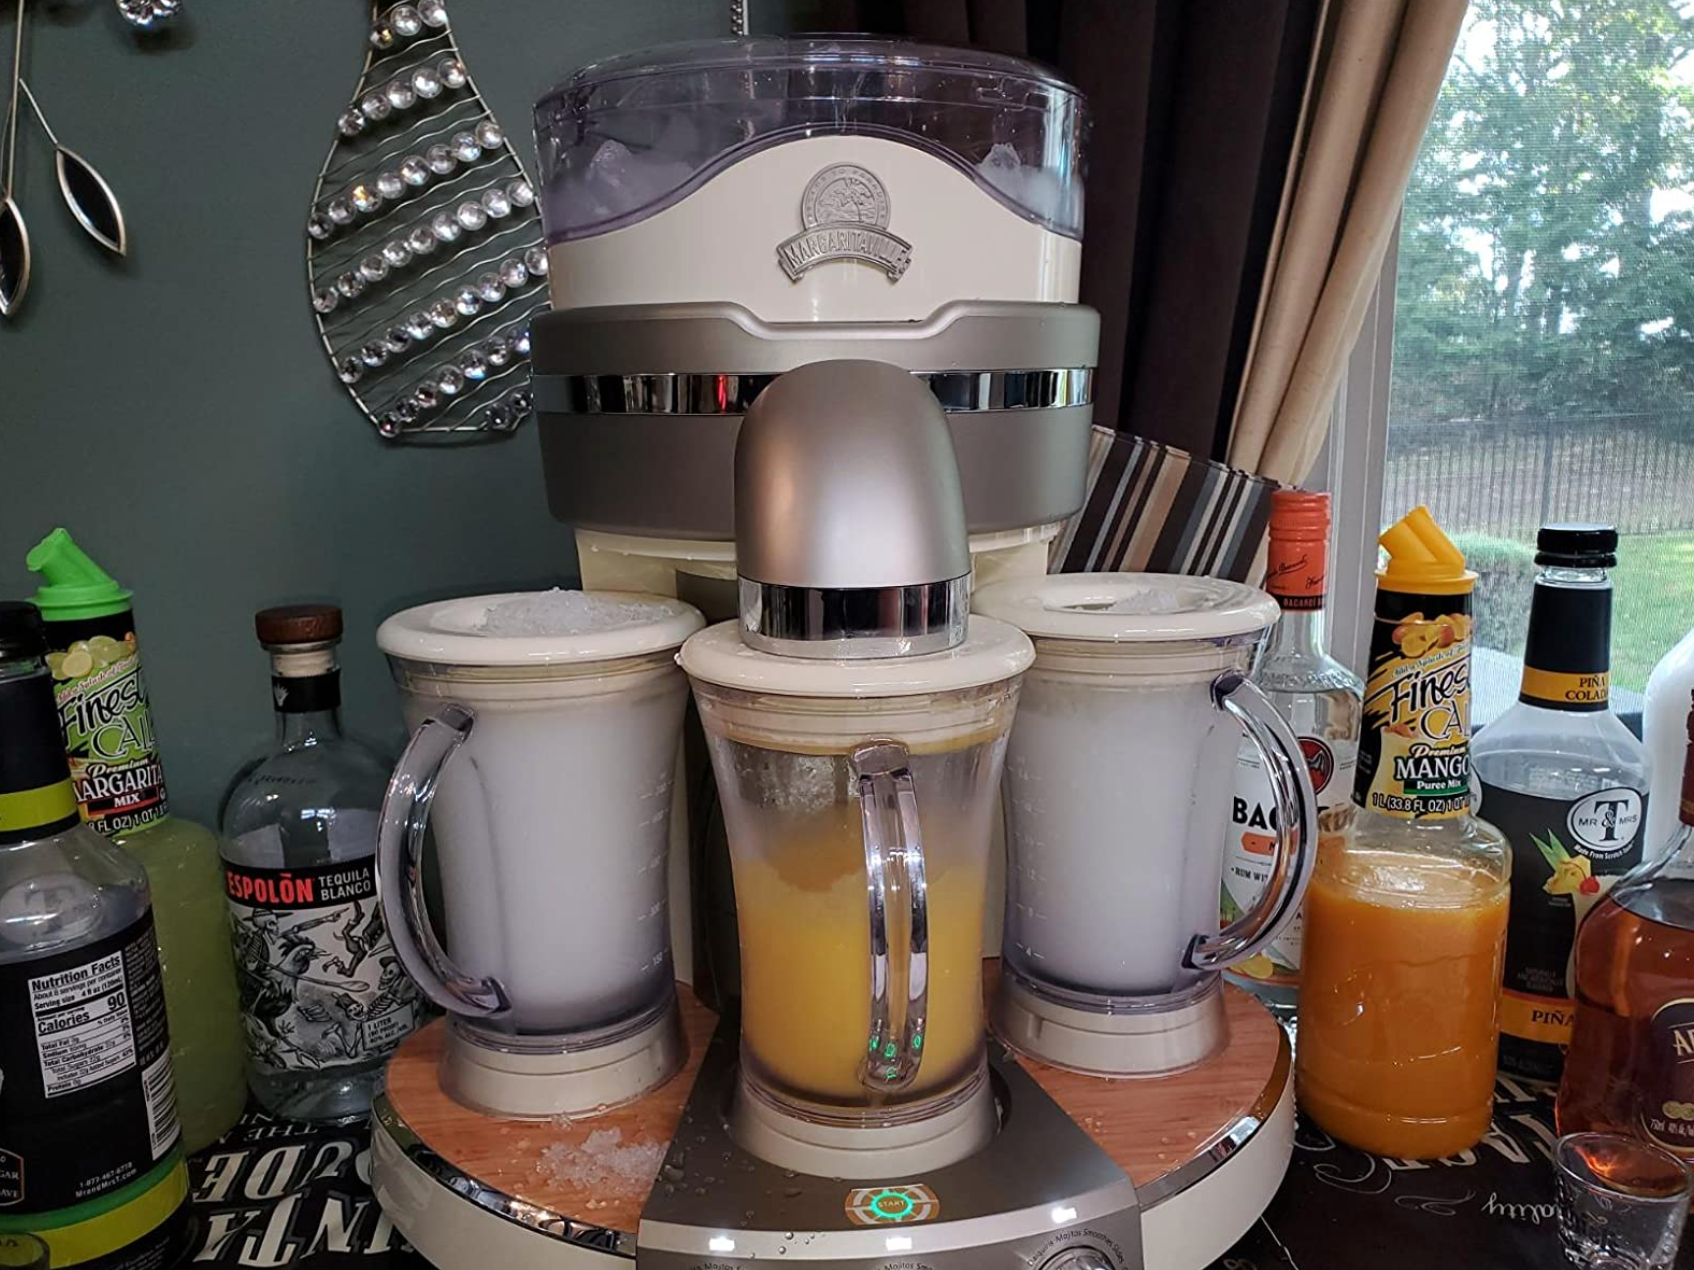 reviewer photo of frozen drinks being made inside the machine